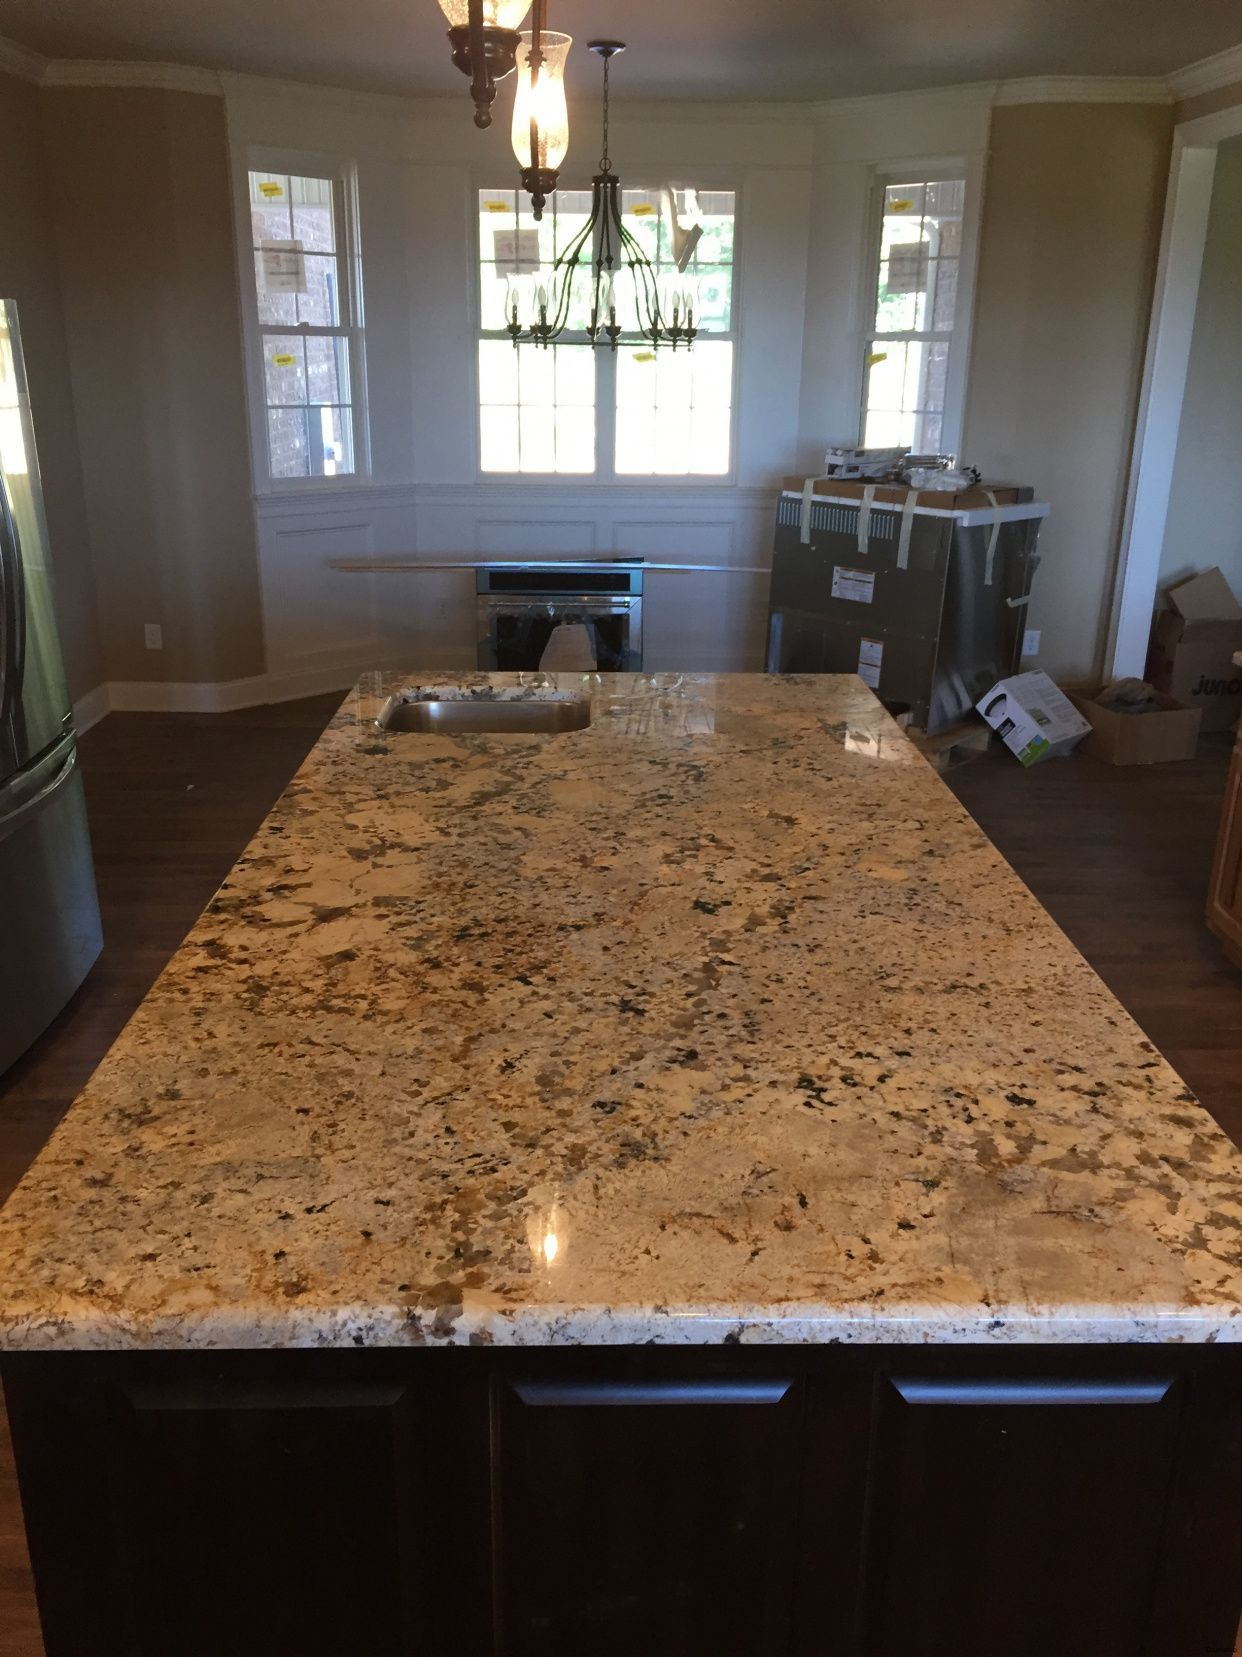 55 Granite Countertop Pieces Kitchen Remodeling Ideas On A Small Budget Check More At